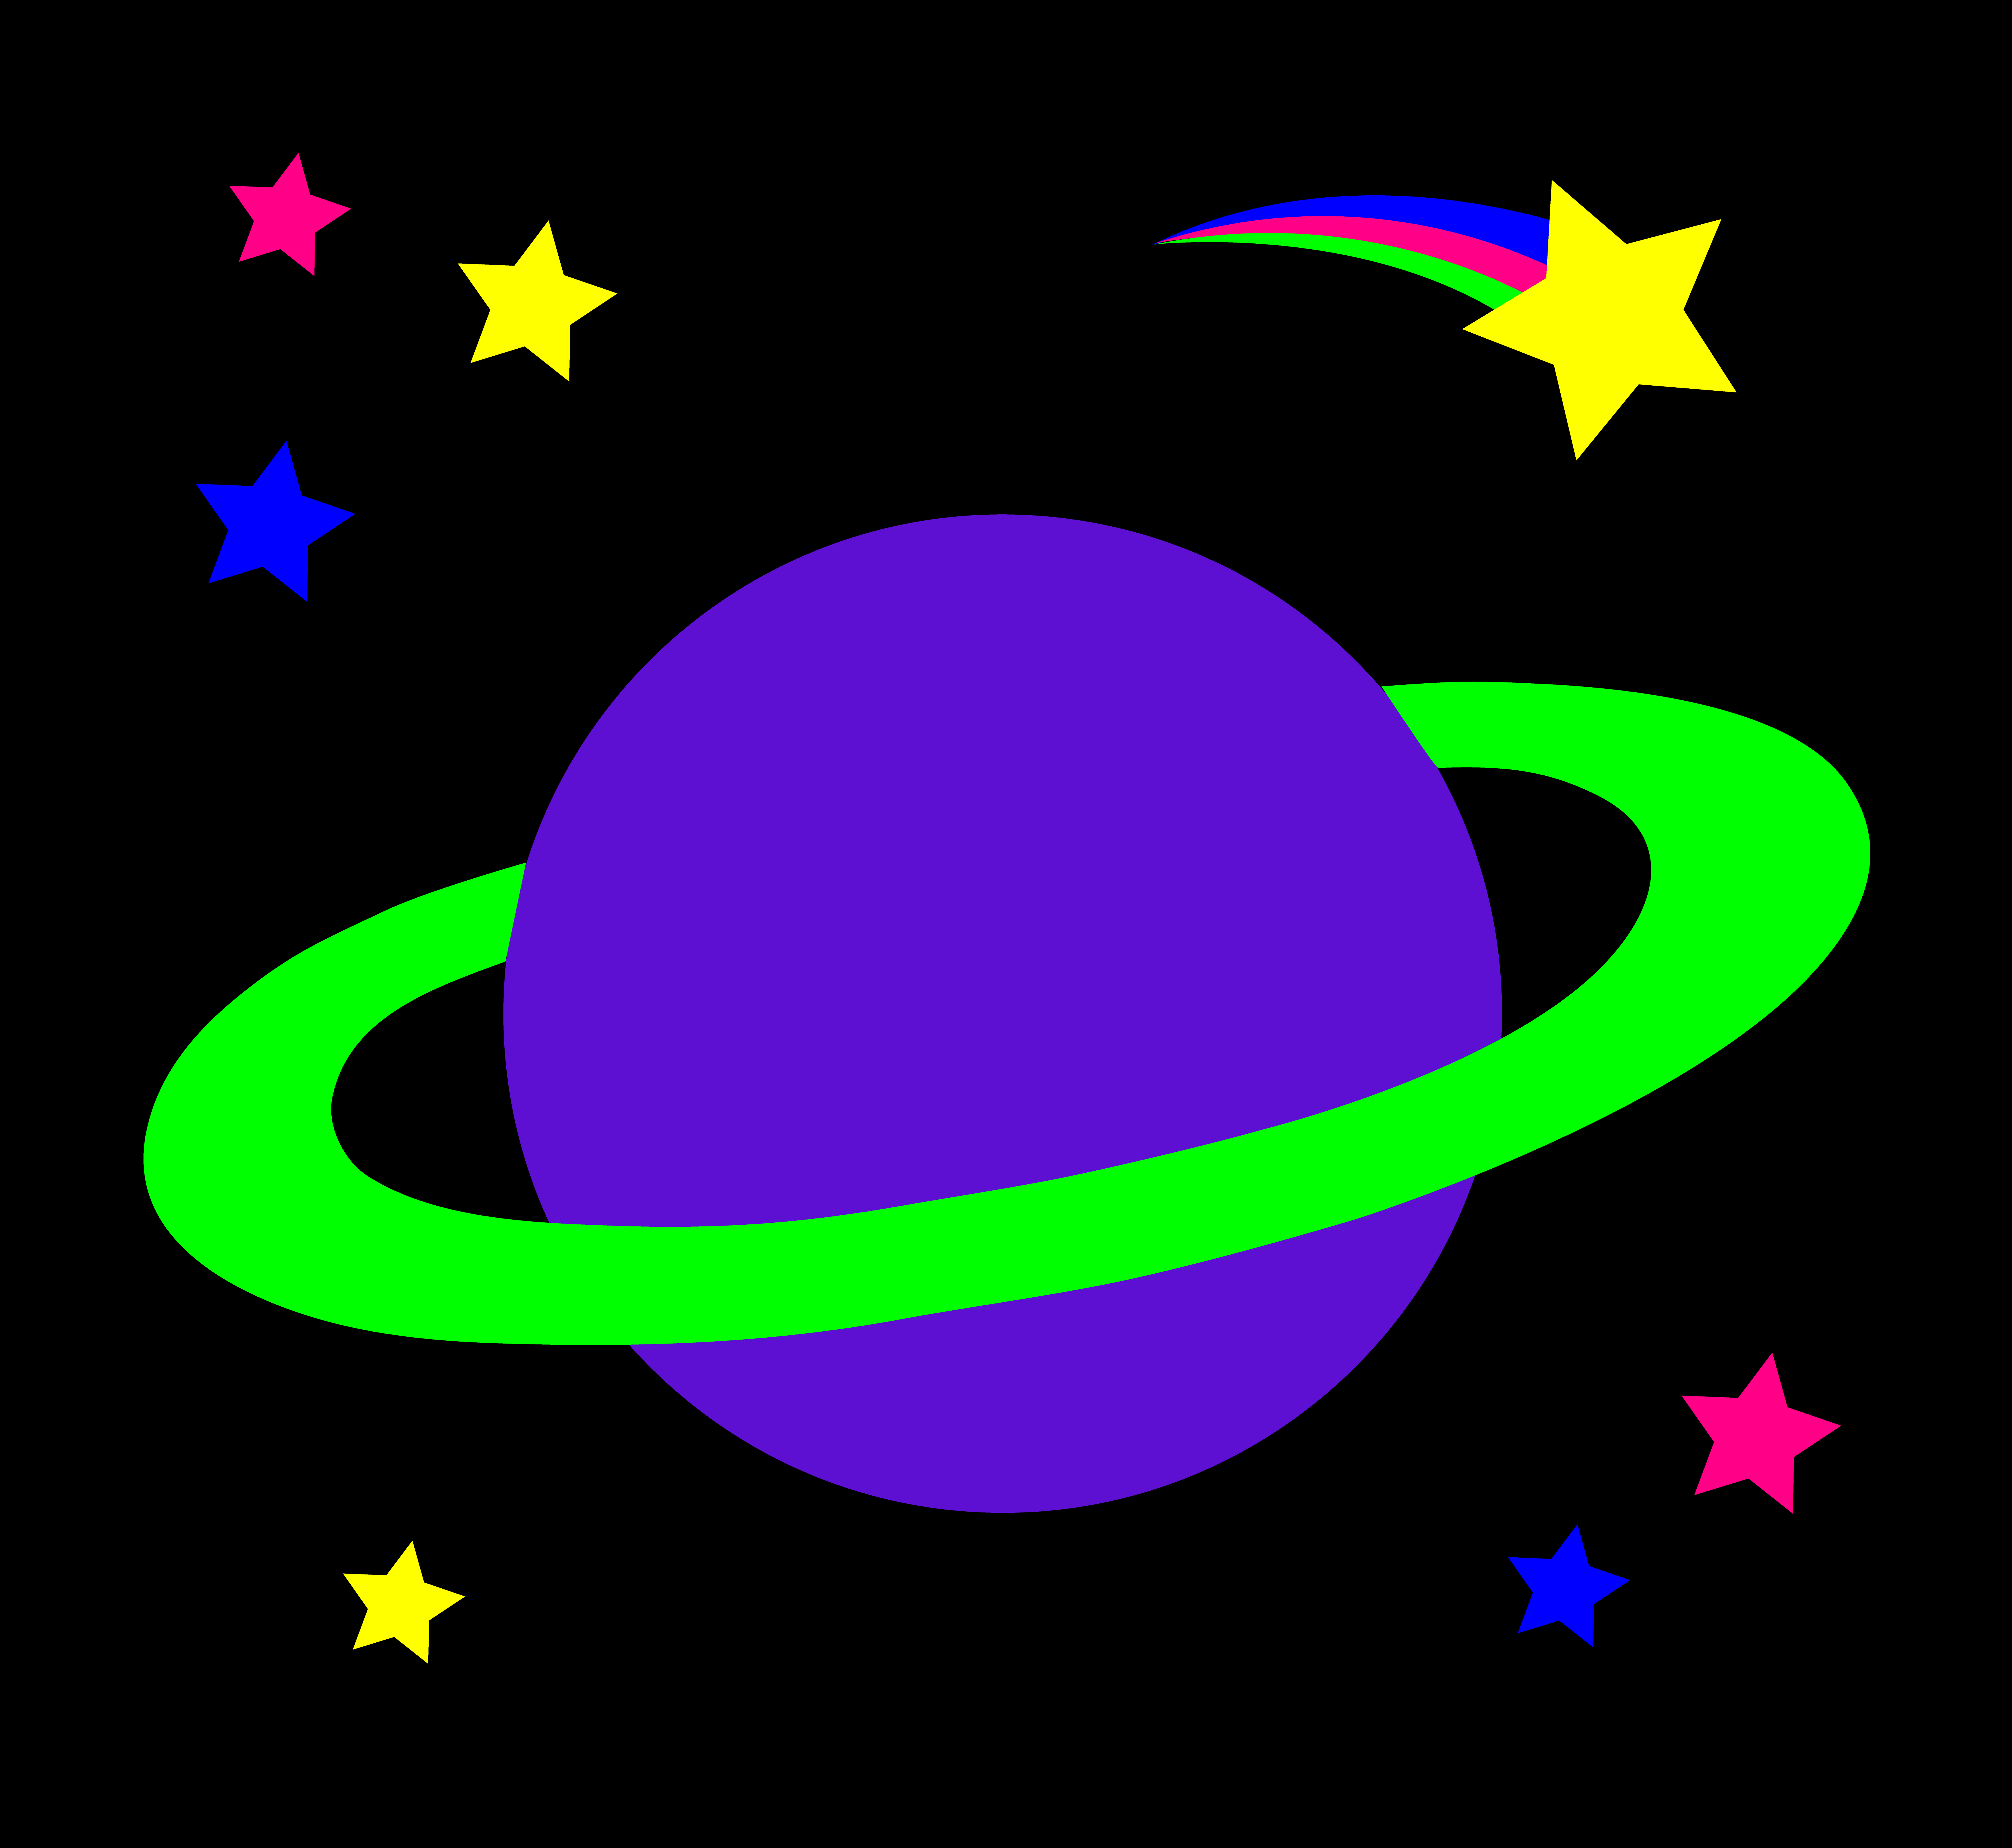 Cartoon Planets and Stars Clipart.